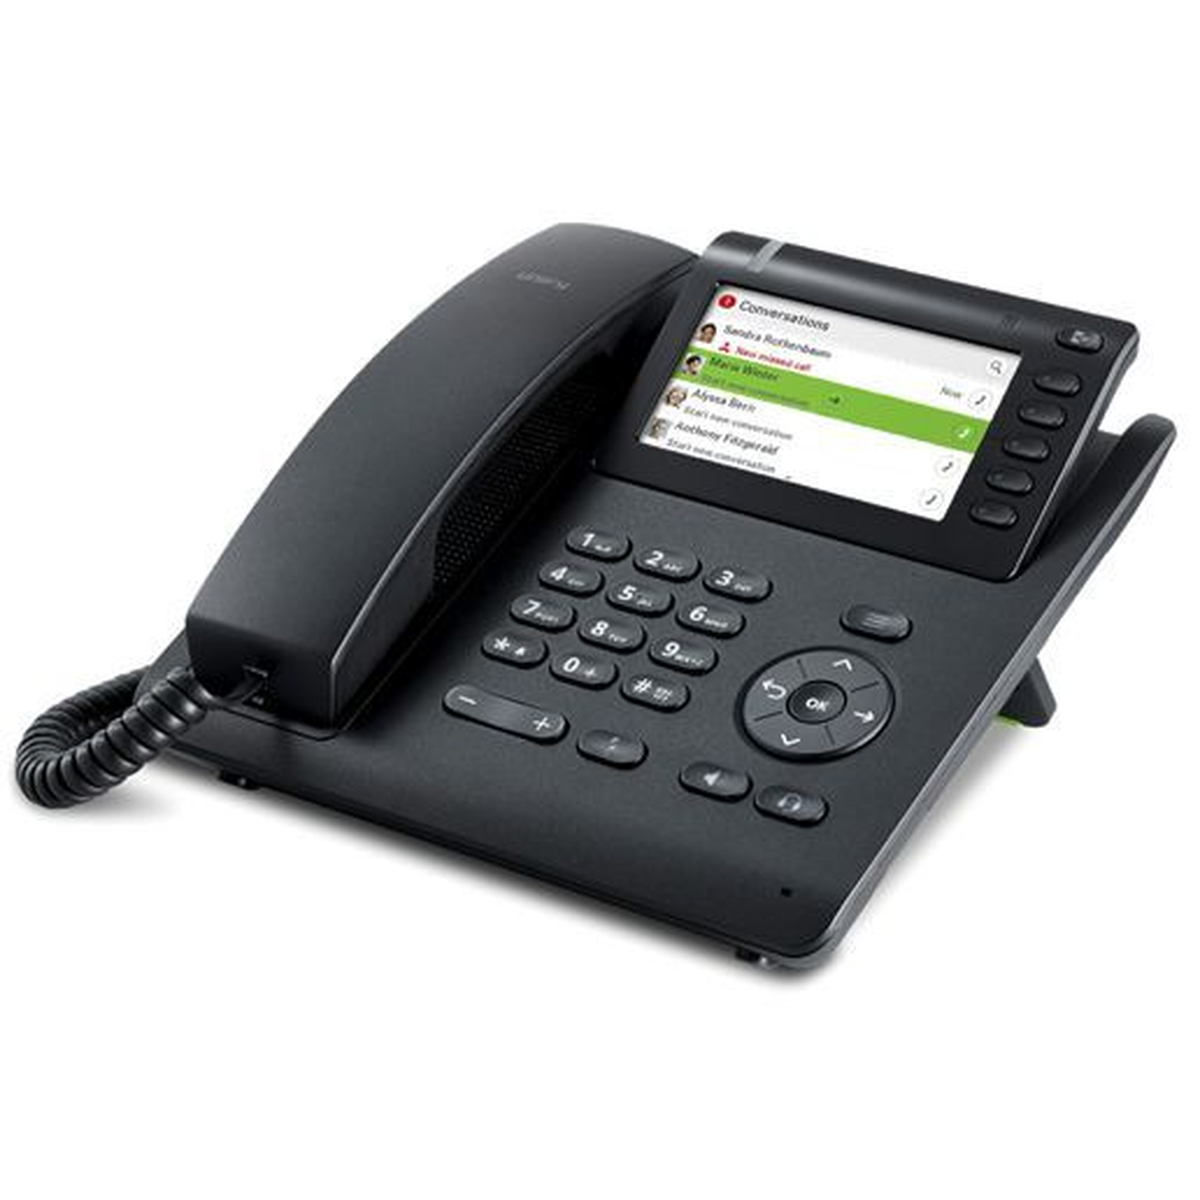 OpenScape Desk Phone CP600 CUC428